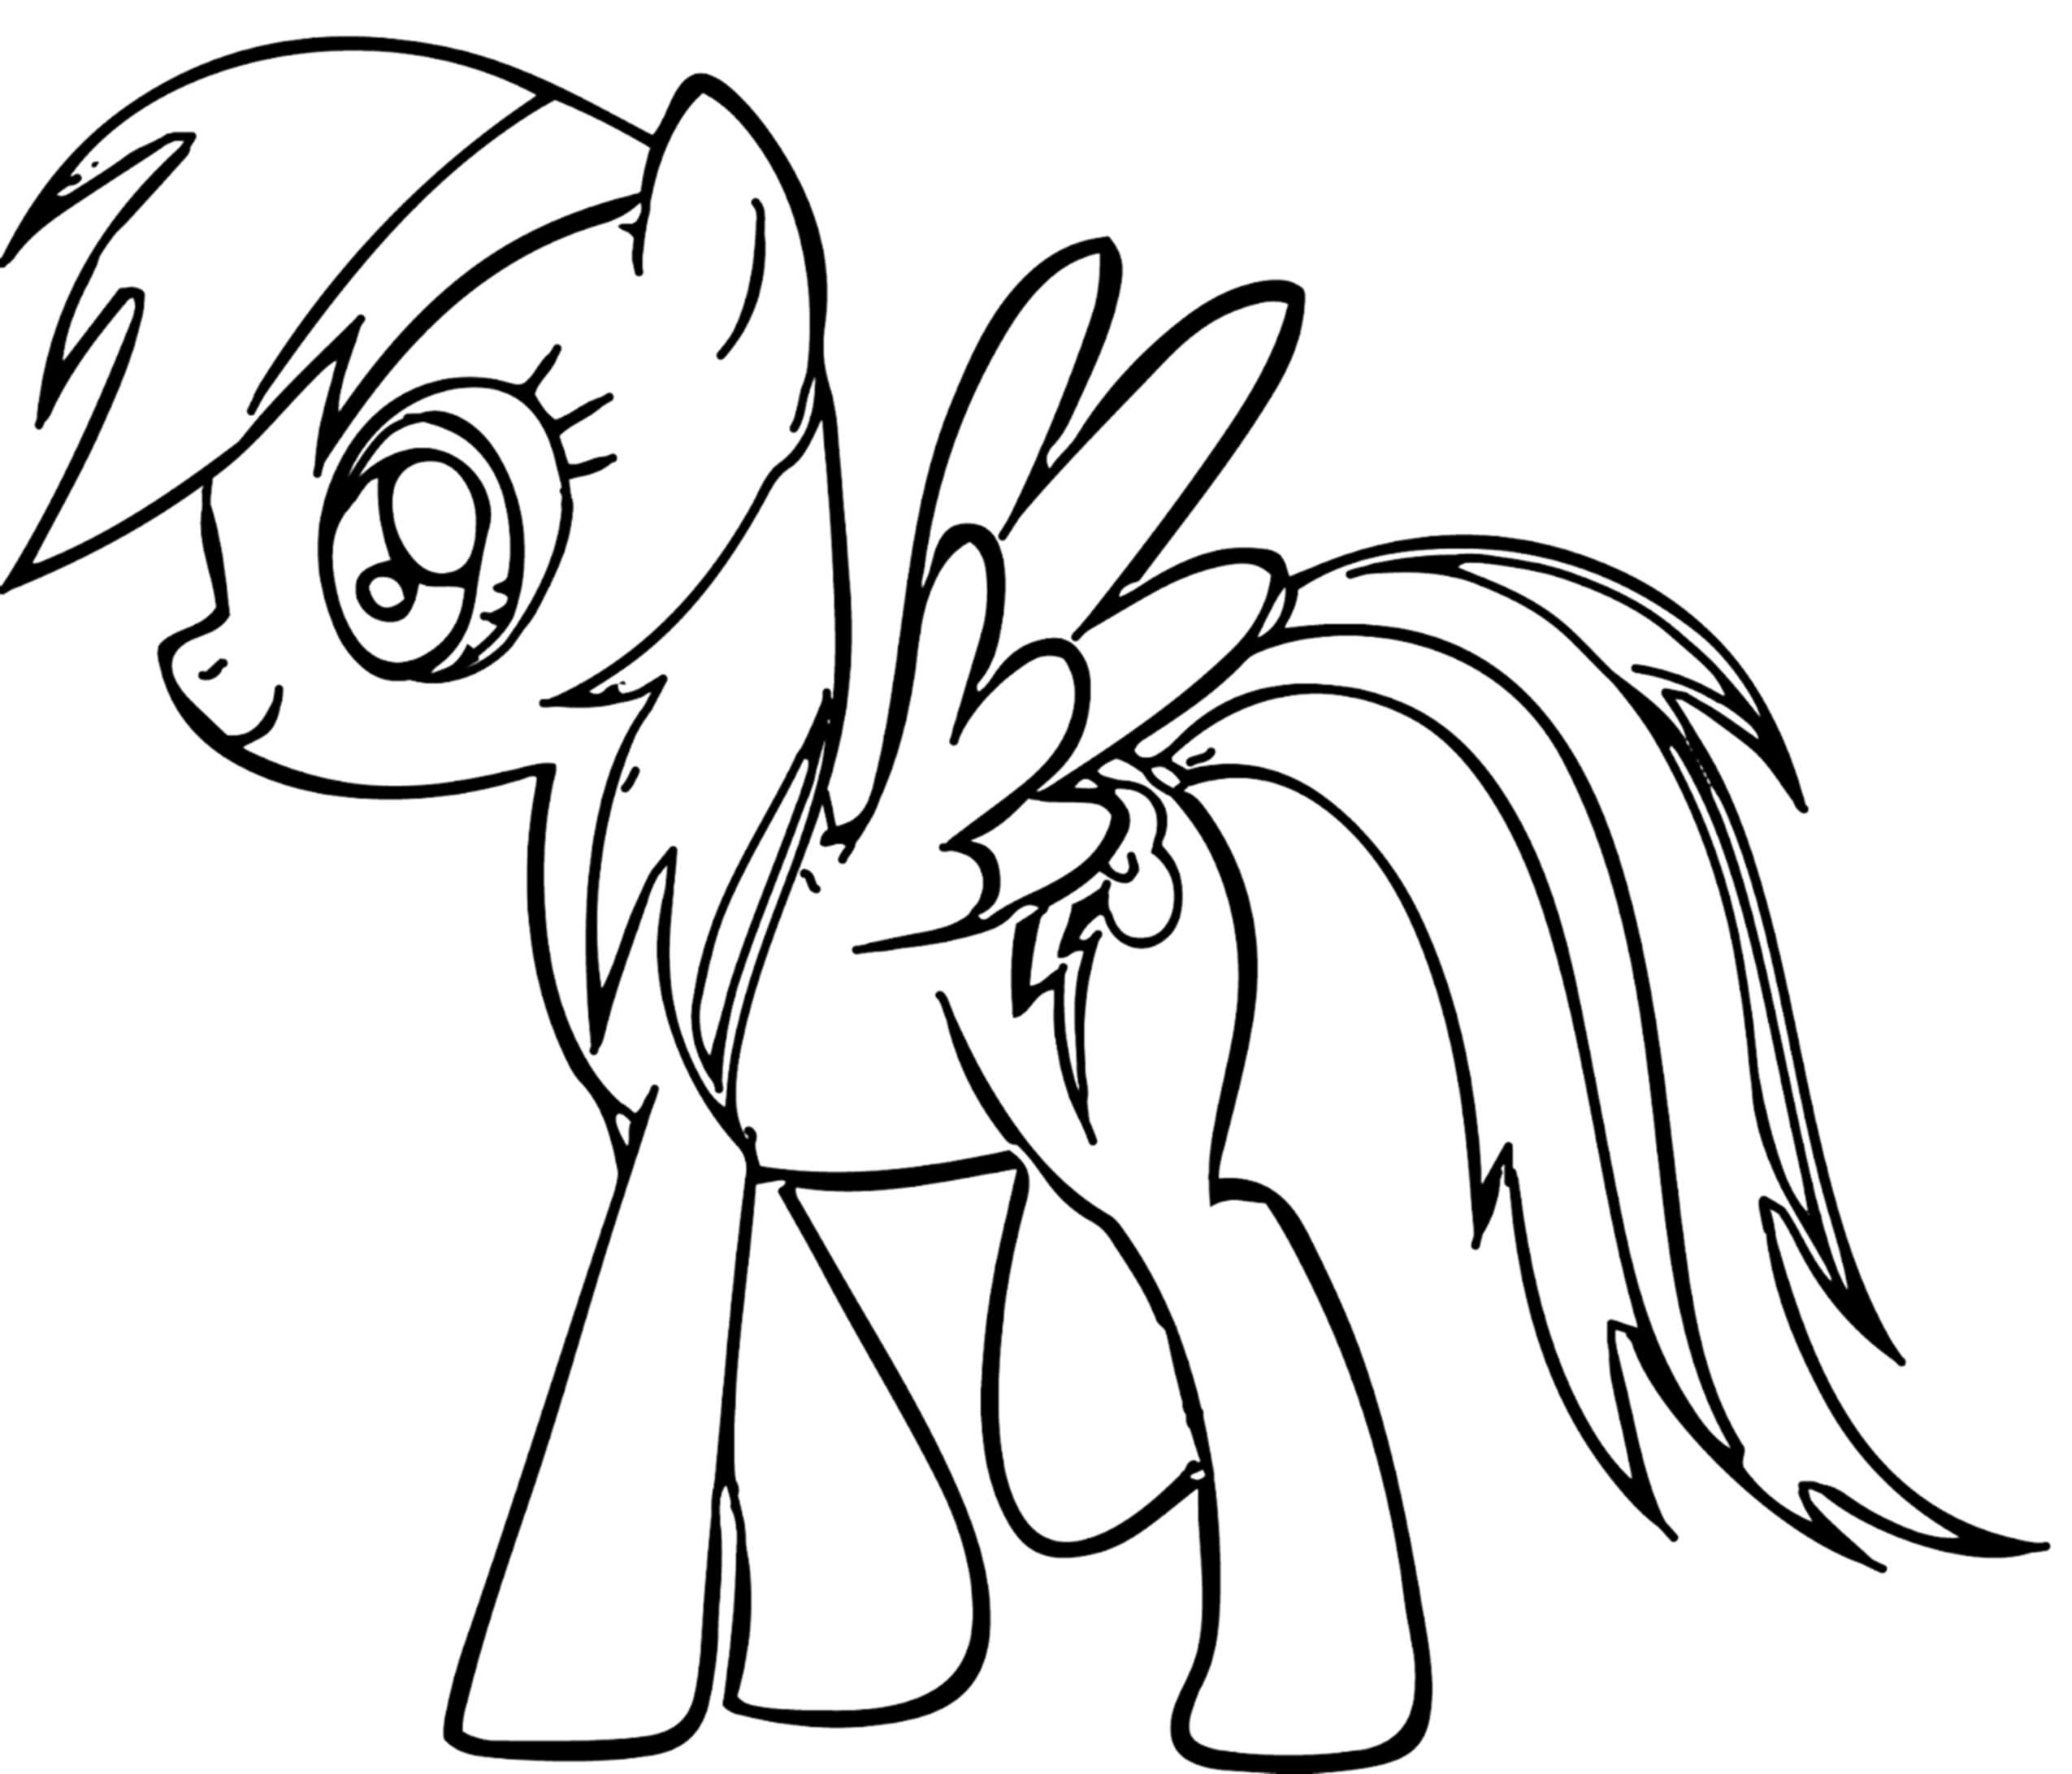 rainbow dash coloring pages free rainbow dash coloring pages best coloring pages for kids pages rainbow free coloring dash